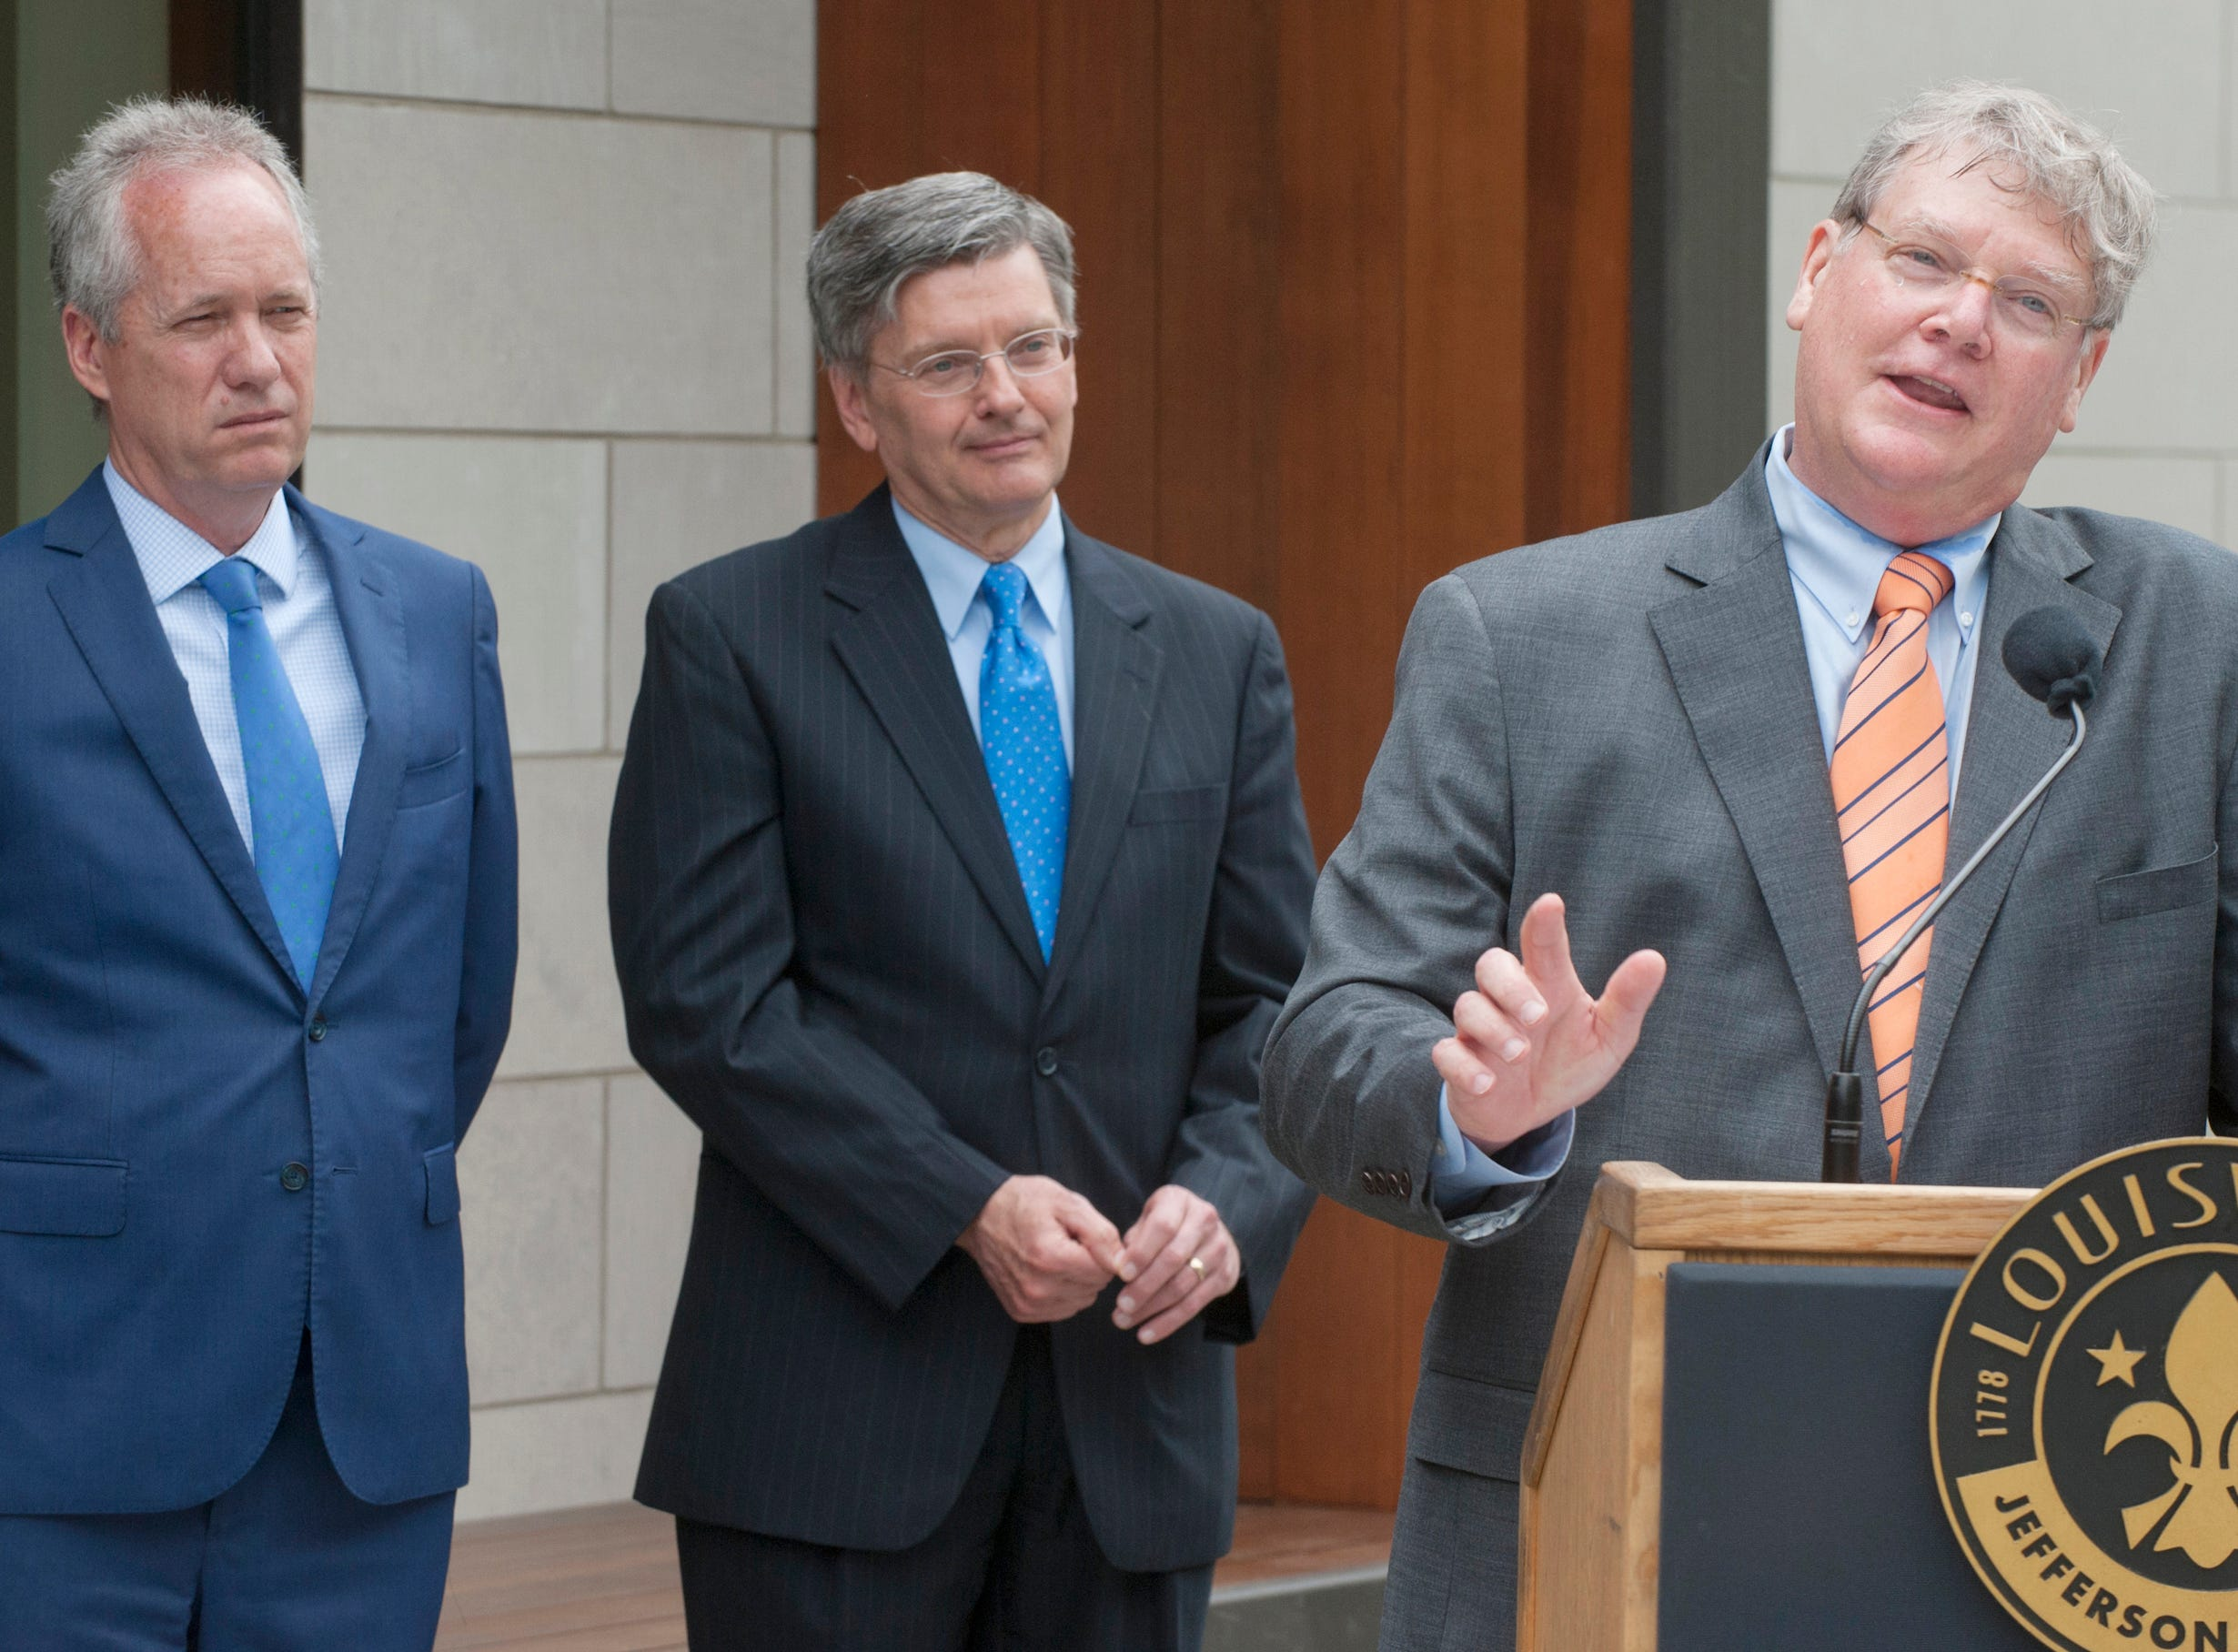 Louisville Metro Mayor Greg Fischer, left, and Louisville Metro Councilman Bill Hollander, center, listen as St. Matthews Mayor Rick Tonini talks about the history of the St. Matthews library branch.  The city of Louisville matched the $1 million dollar commitment of the City of St. Matthews to build the new addition to the branch. May 9, 2019